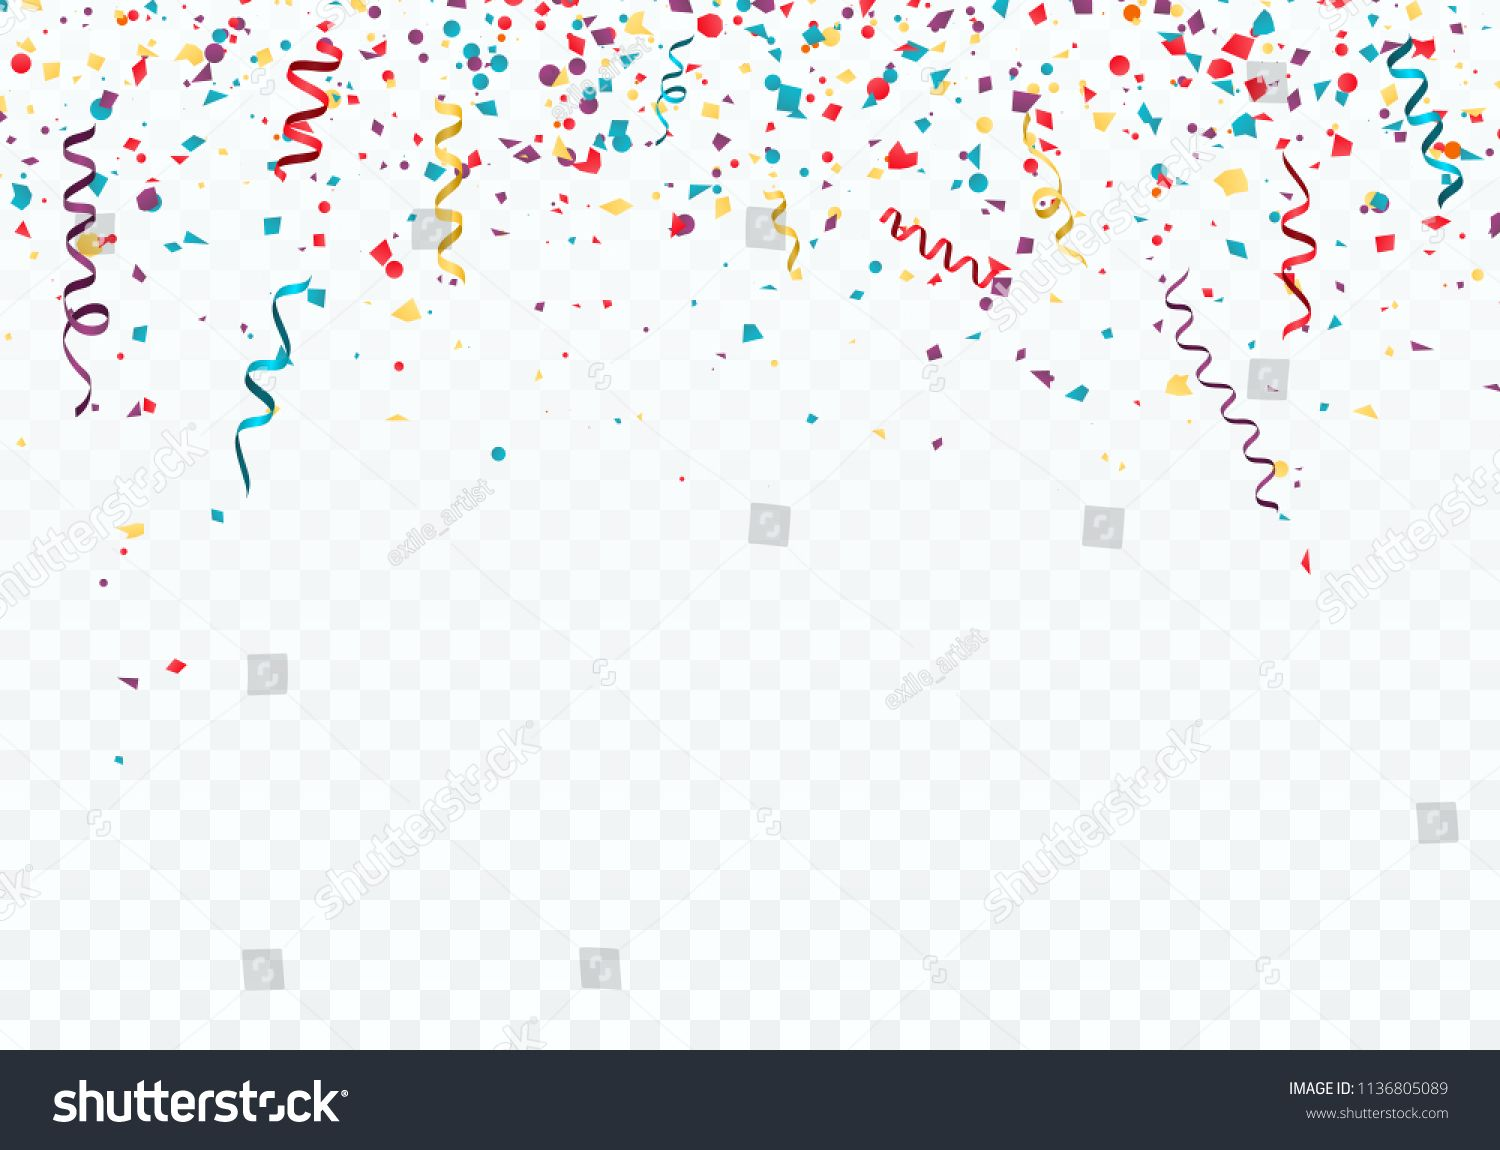 Celebration or festival background template with falling